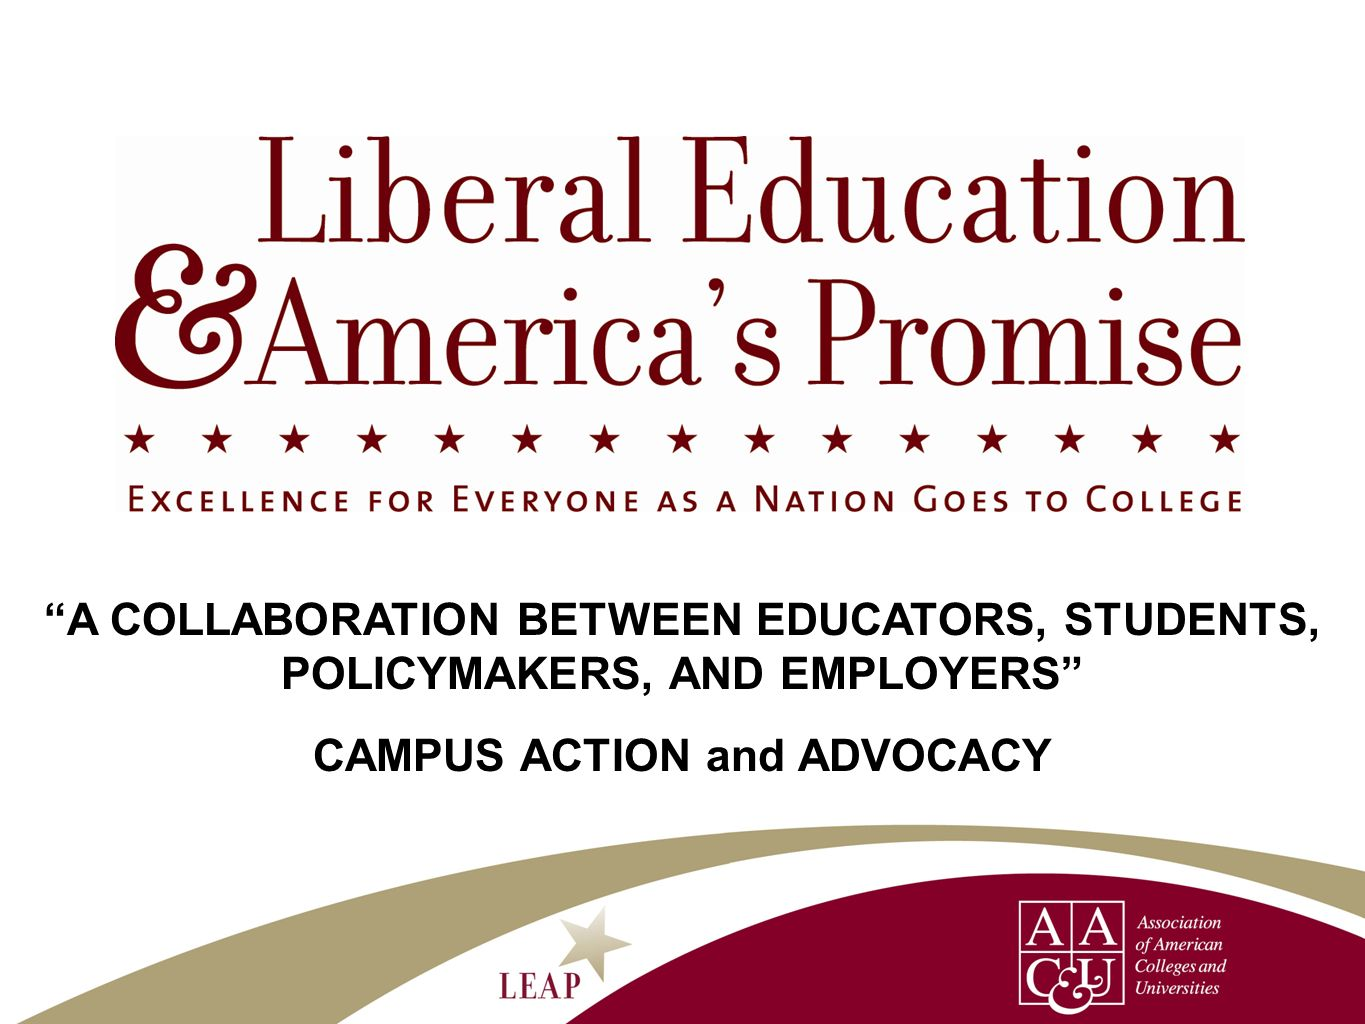 CAMPUS ACTION and ADVOCACY